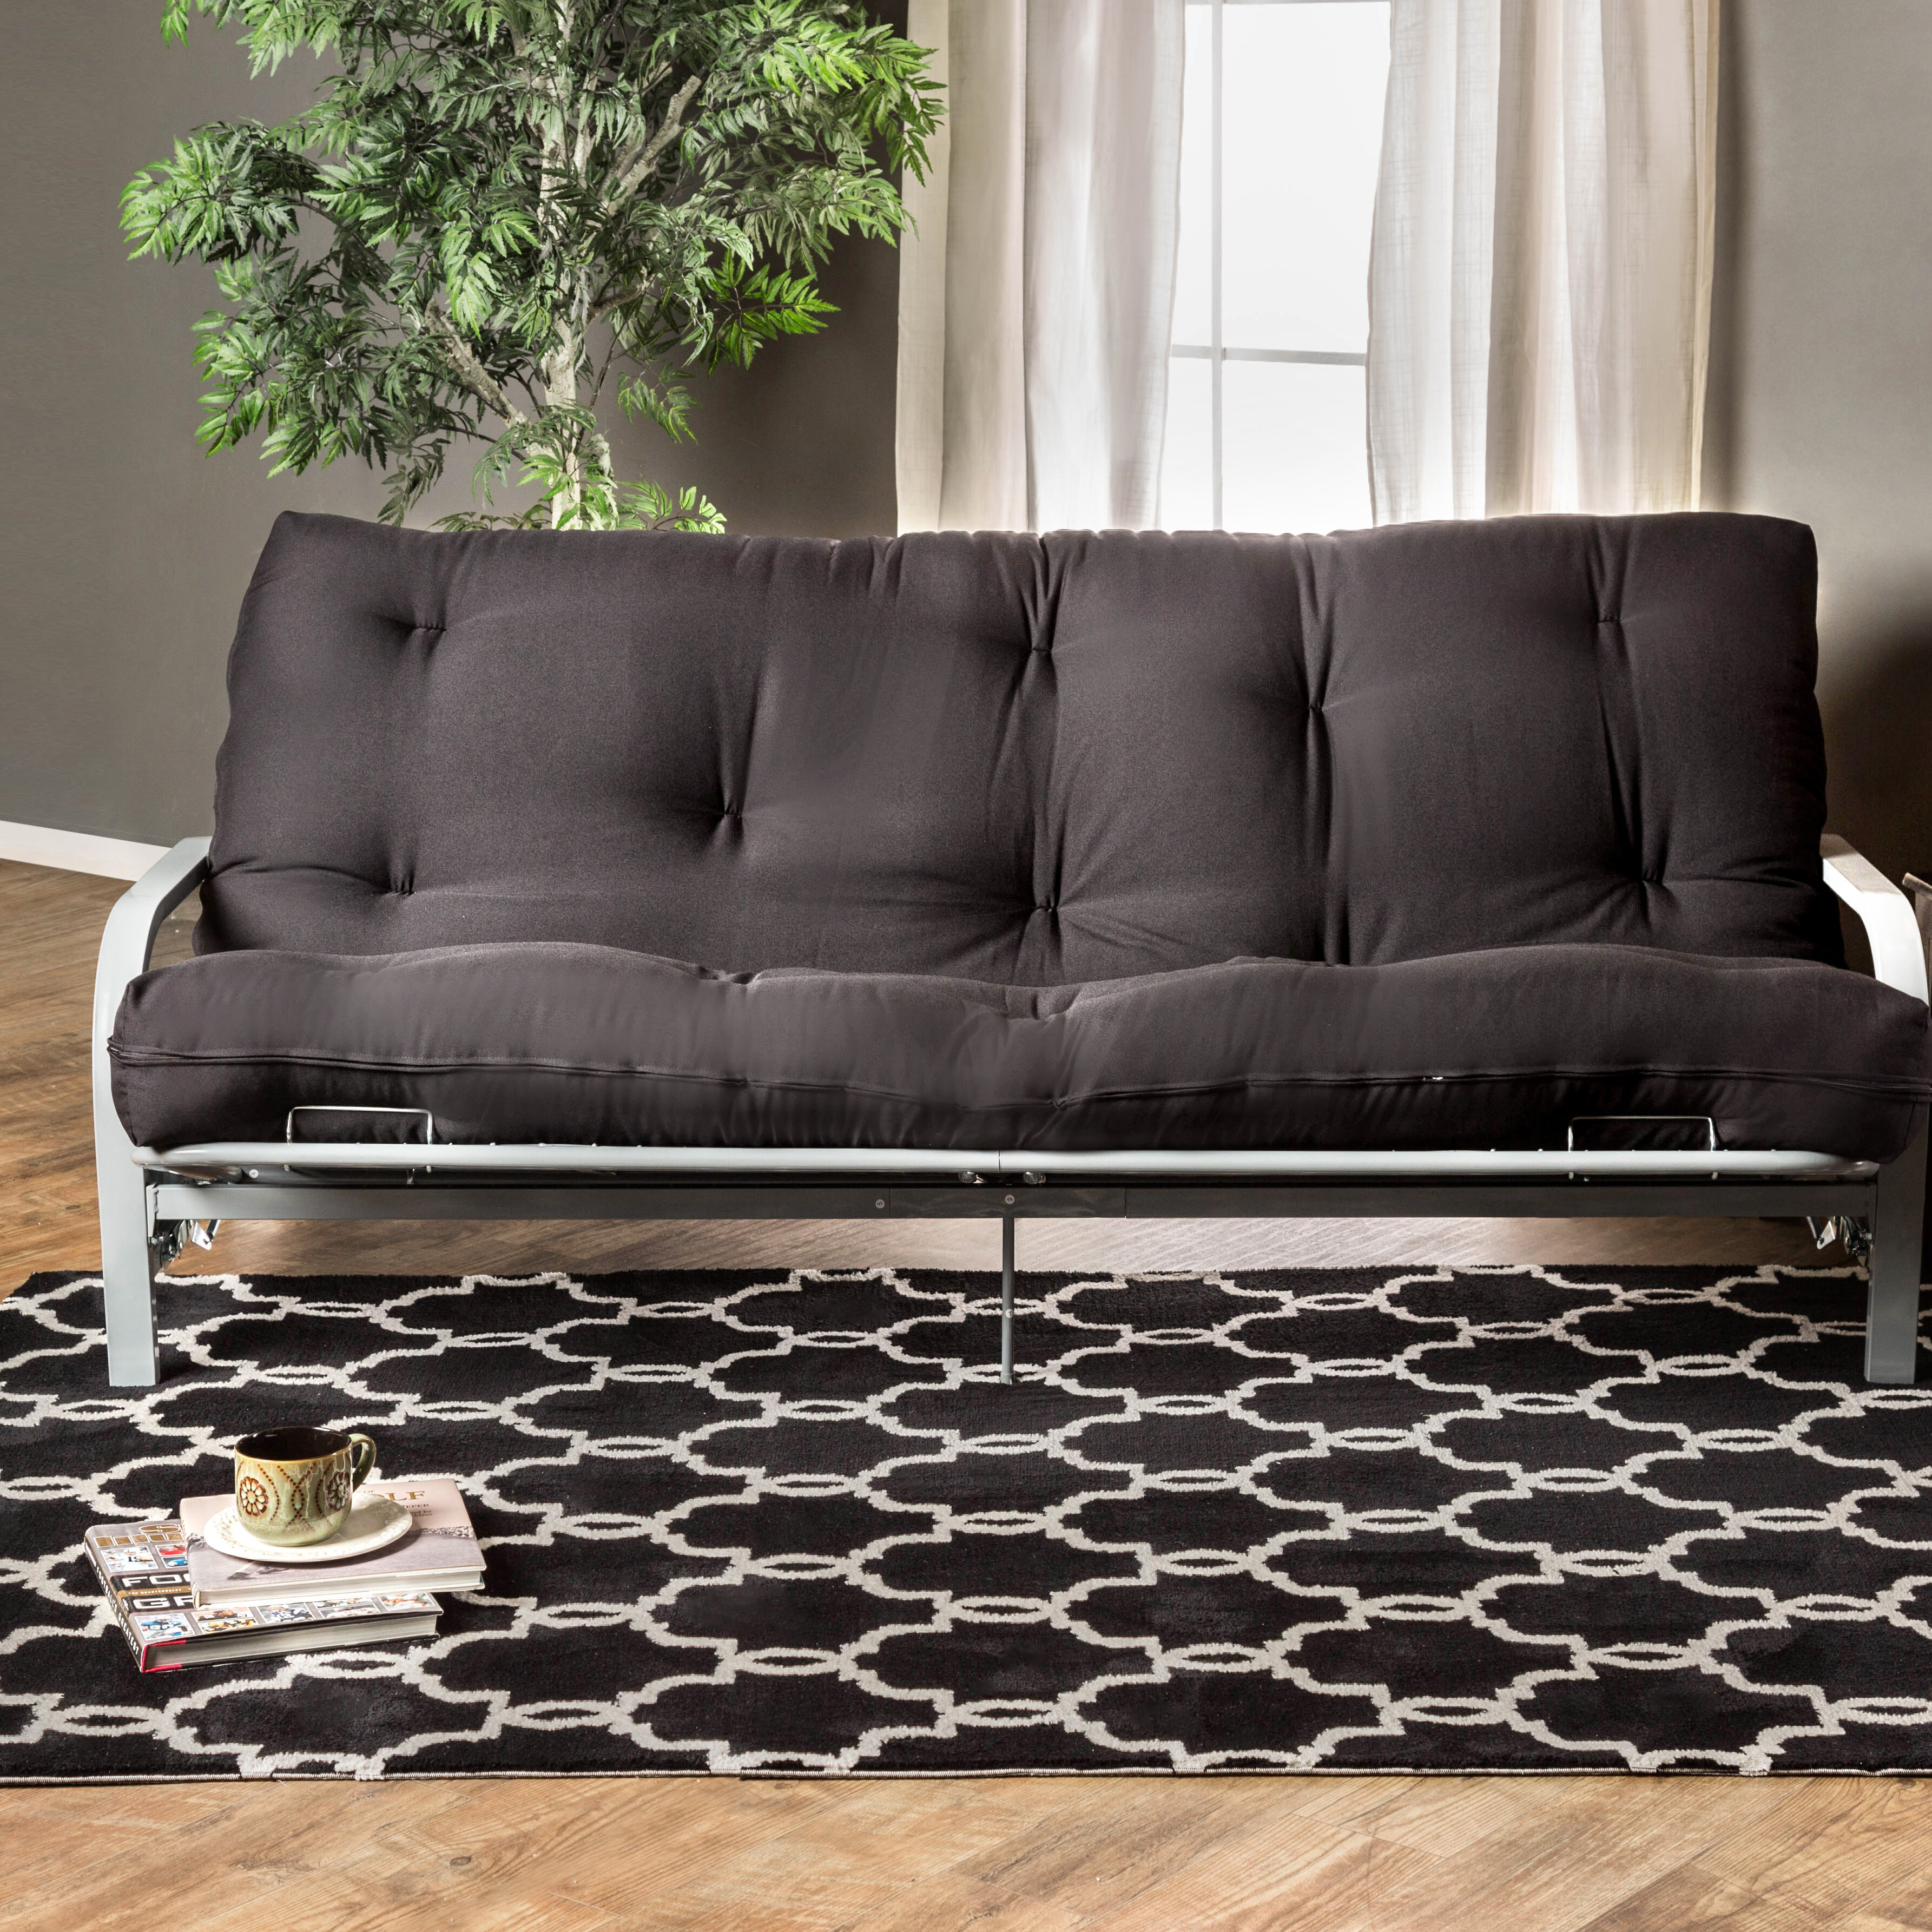 Swell Erazo 8 Memory Foam Full Size Futon Mattress Gmtry Best Dining Table And Chair Ideas Images Gmtryco